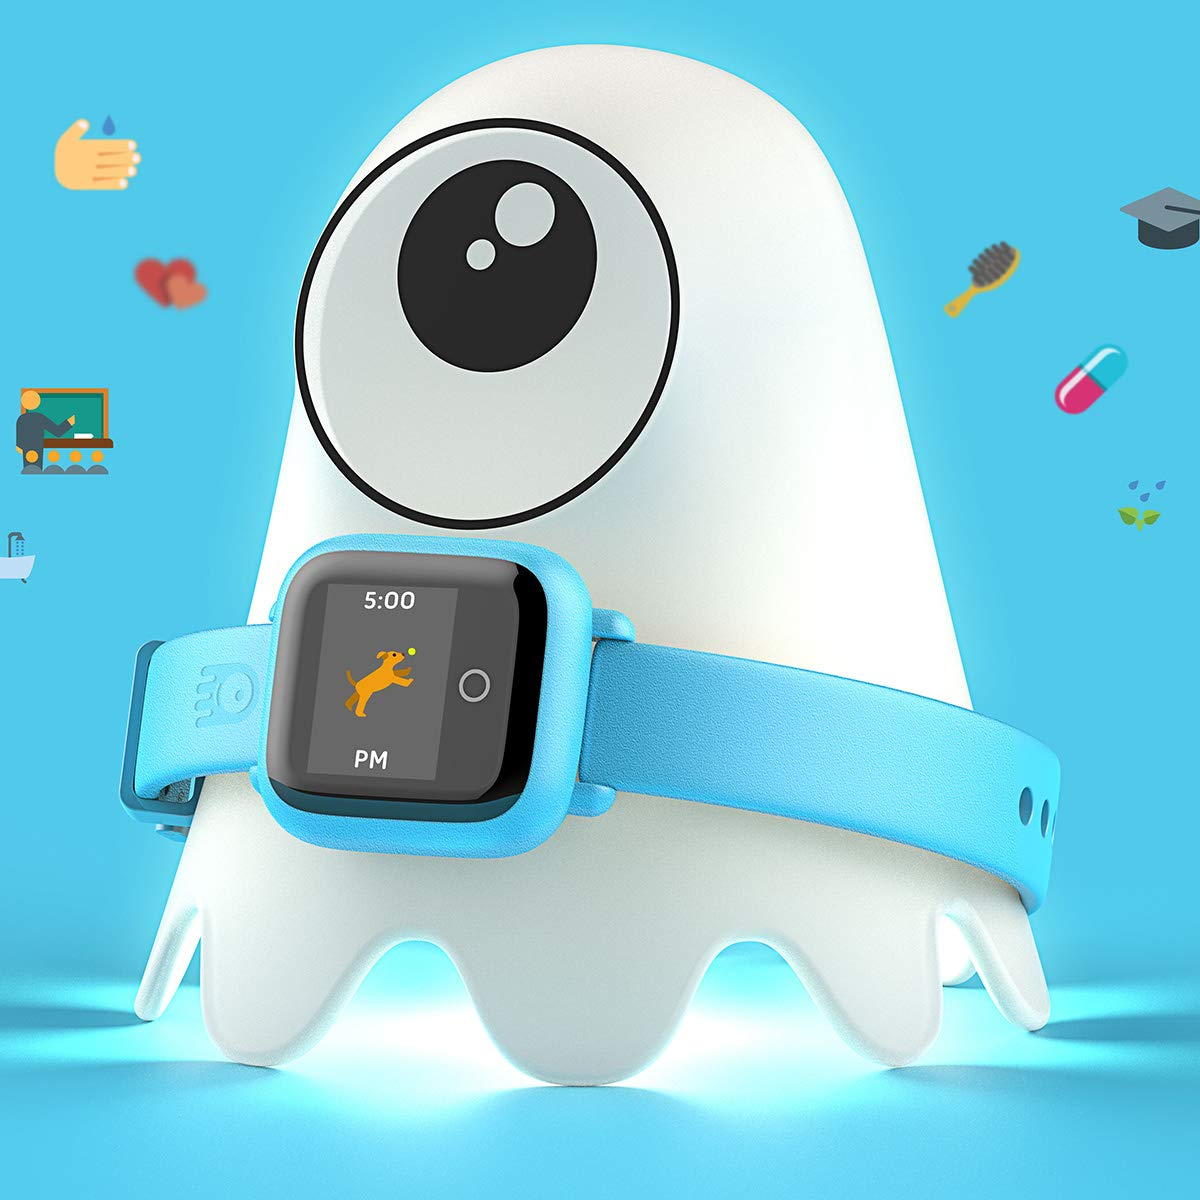 New - Octopus Kids Smart Watch v2 - Blue - Plan Activities, Responsibilities and Healthy Habits - Fitness Tracker and Electronic Daily Schedule - Night Light Included by Octopus